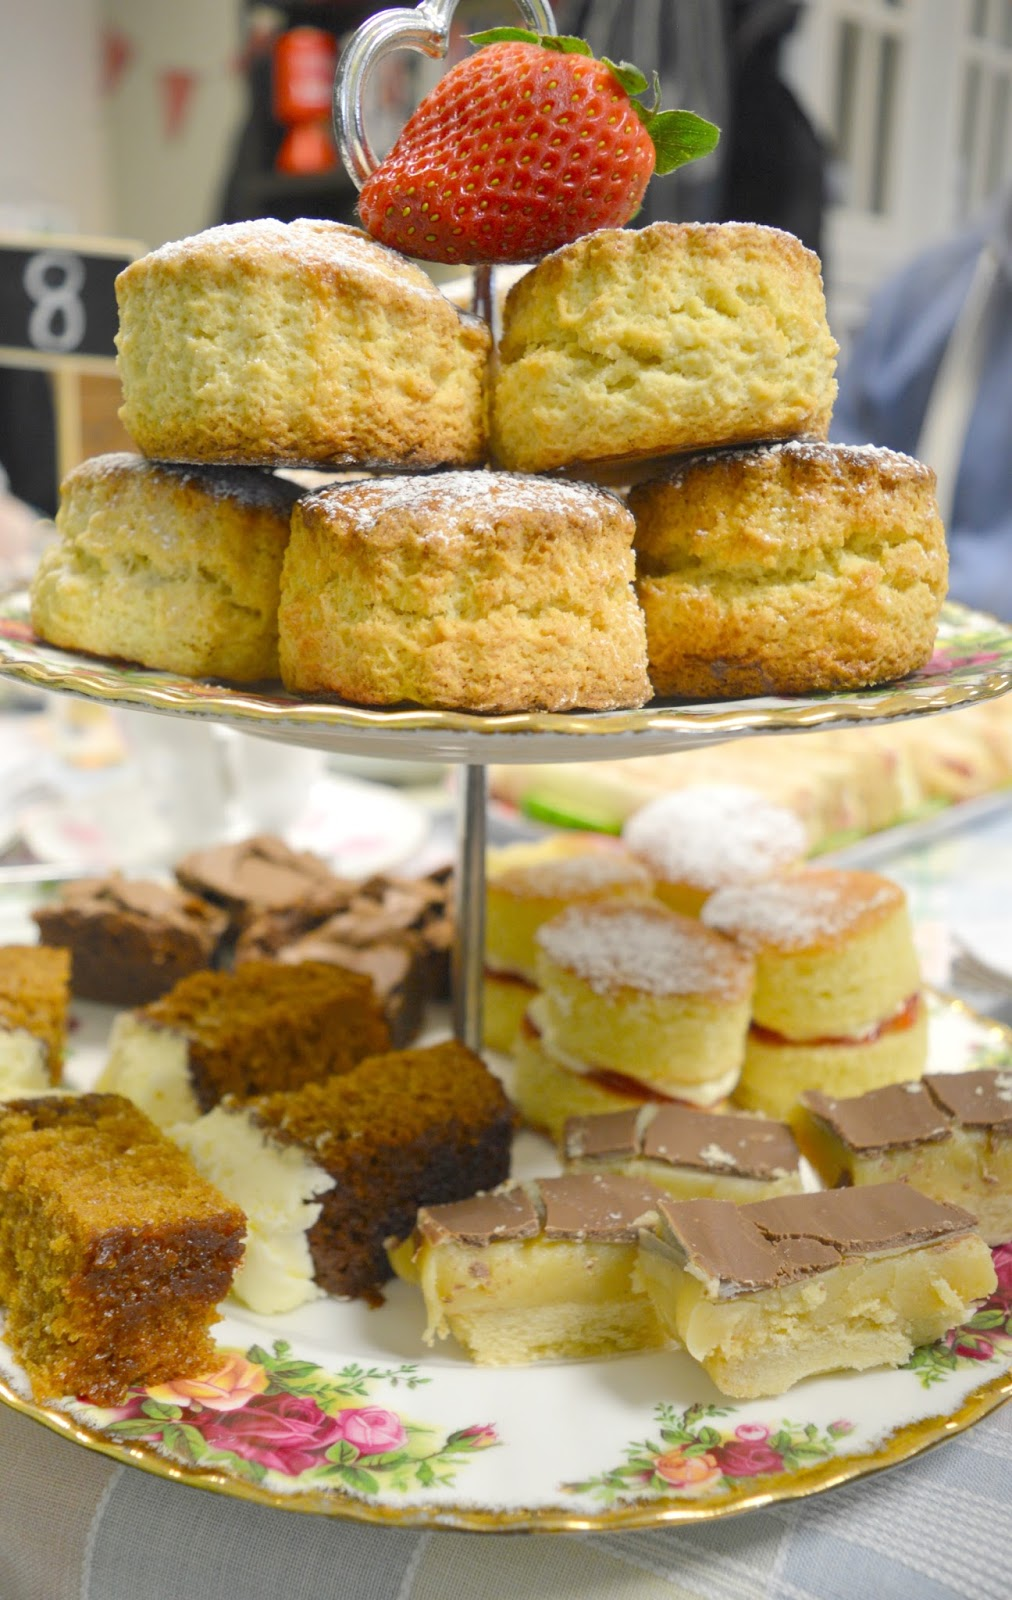 Afternoon Tea at VIP Teas, High Spen - Cake Stand